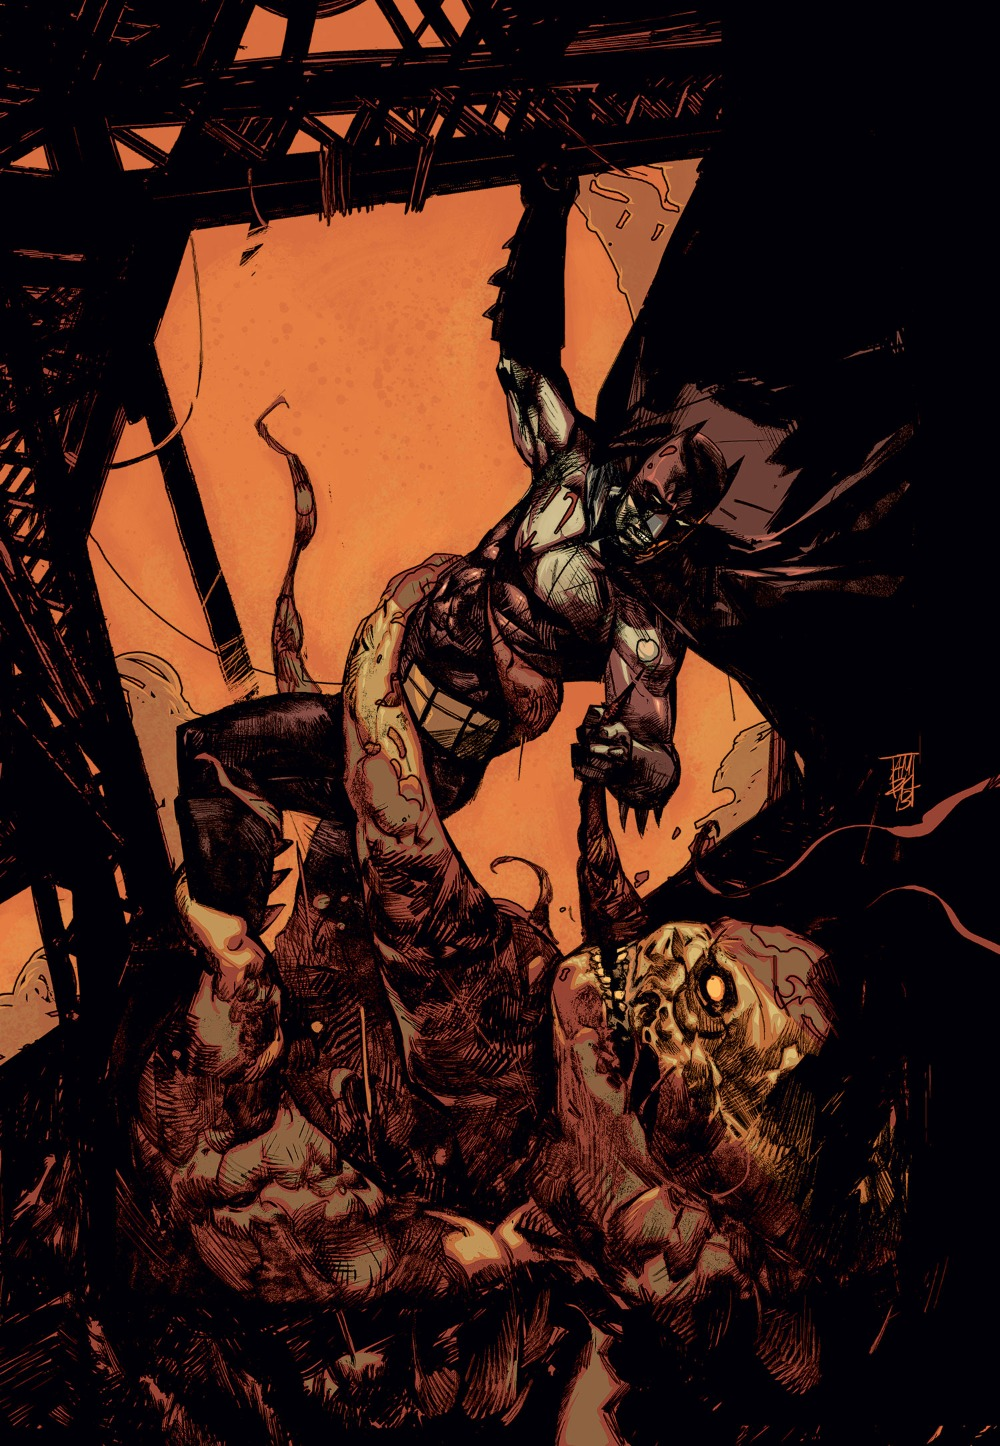 BATMAN: THE DARK KNIGHT #25